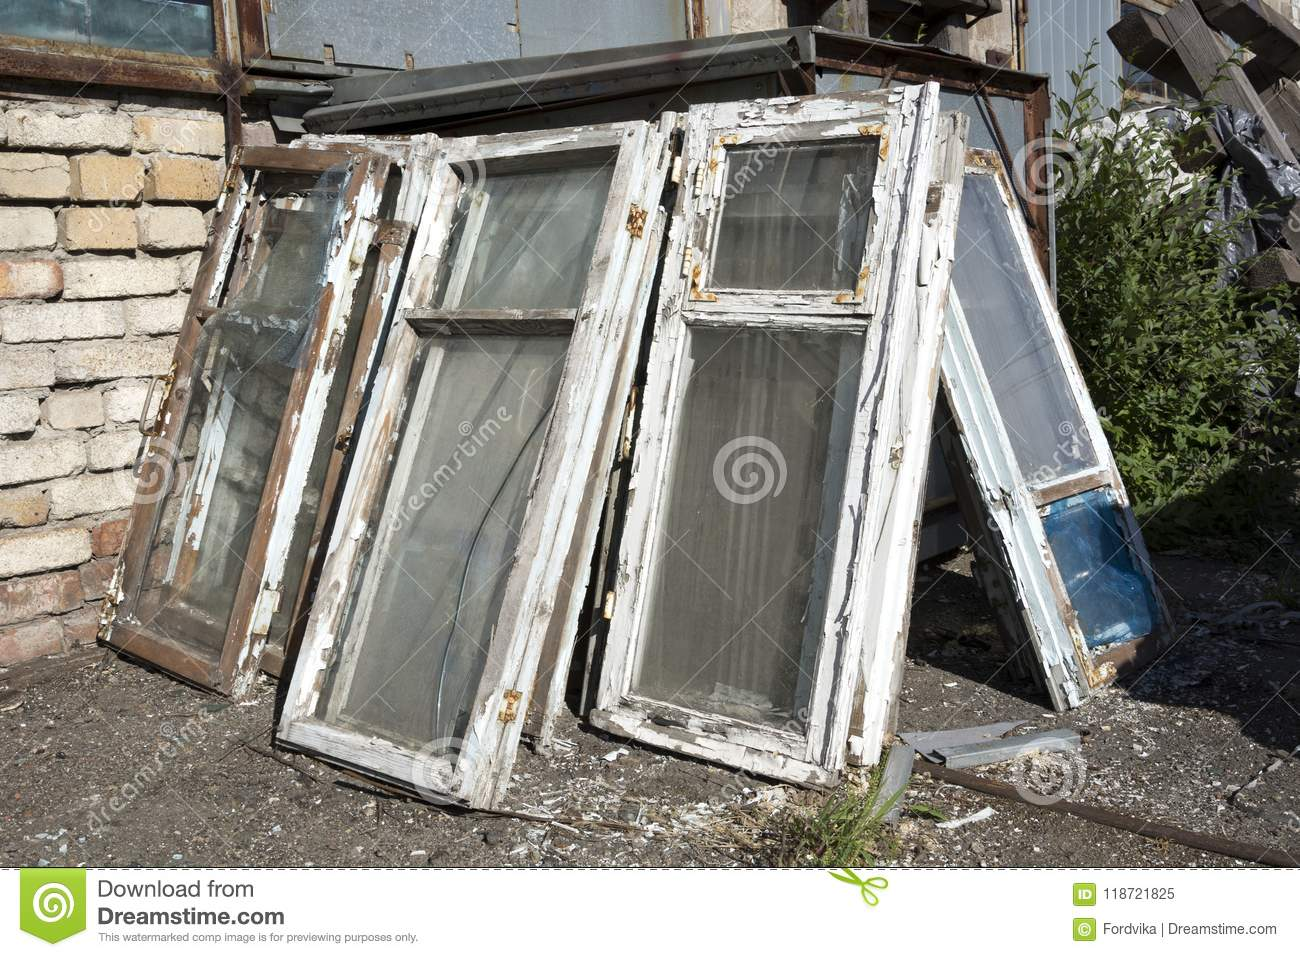 The old windows in a wooden frame with shabby white paint and broken glass lie in a heap in the dump